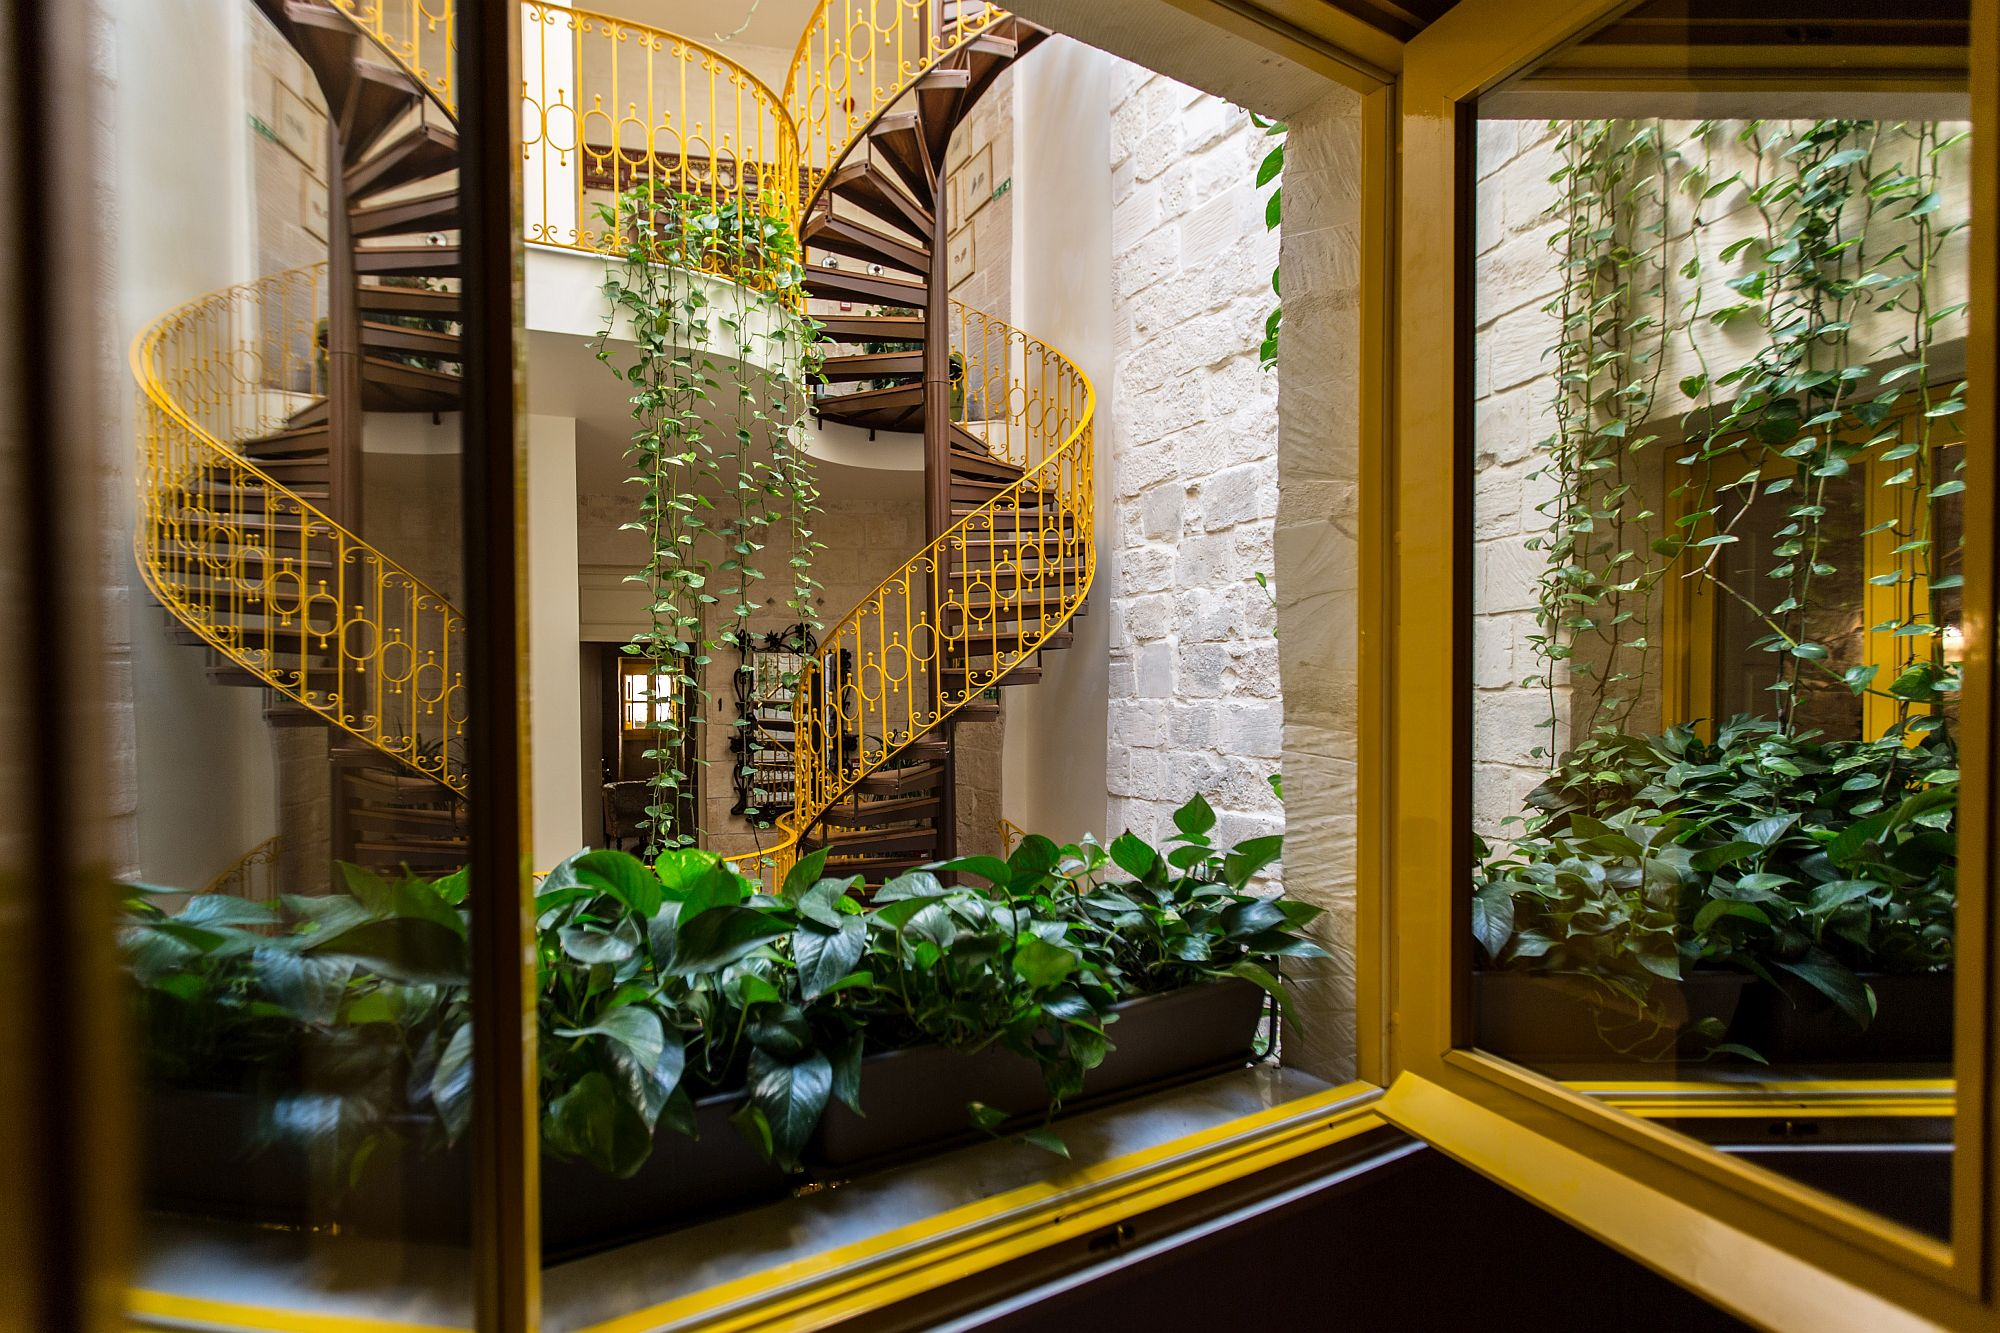 Stunning view of the spiral staircase and indoor greenery from the second suite